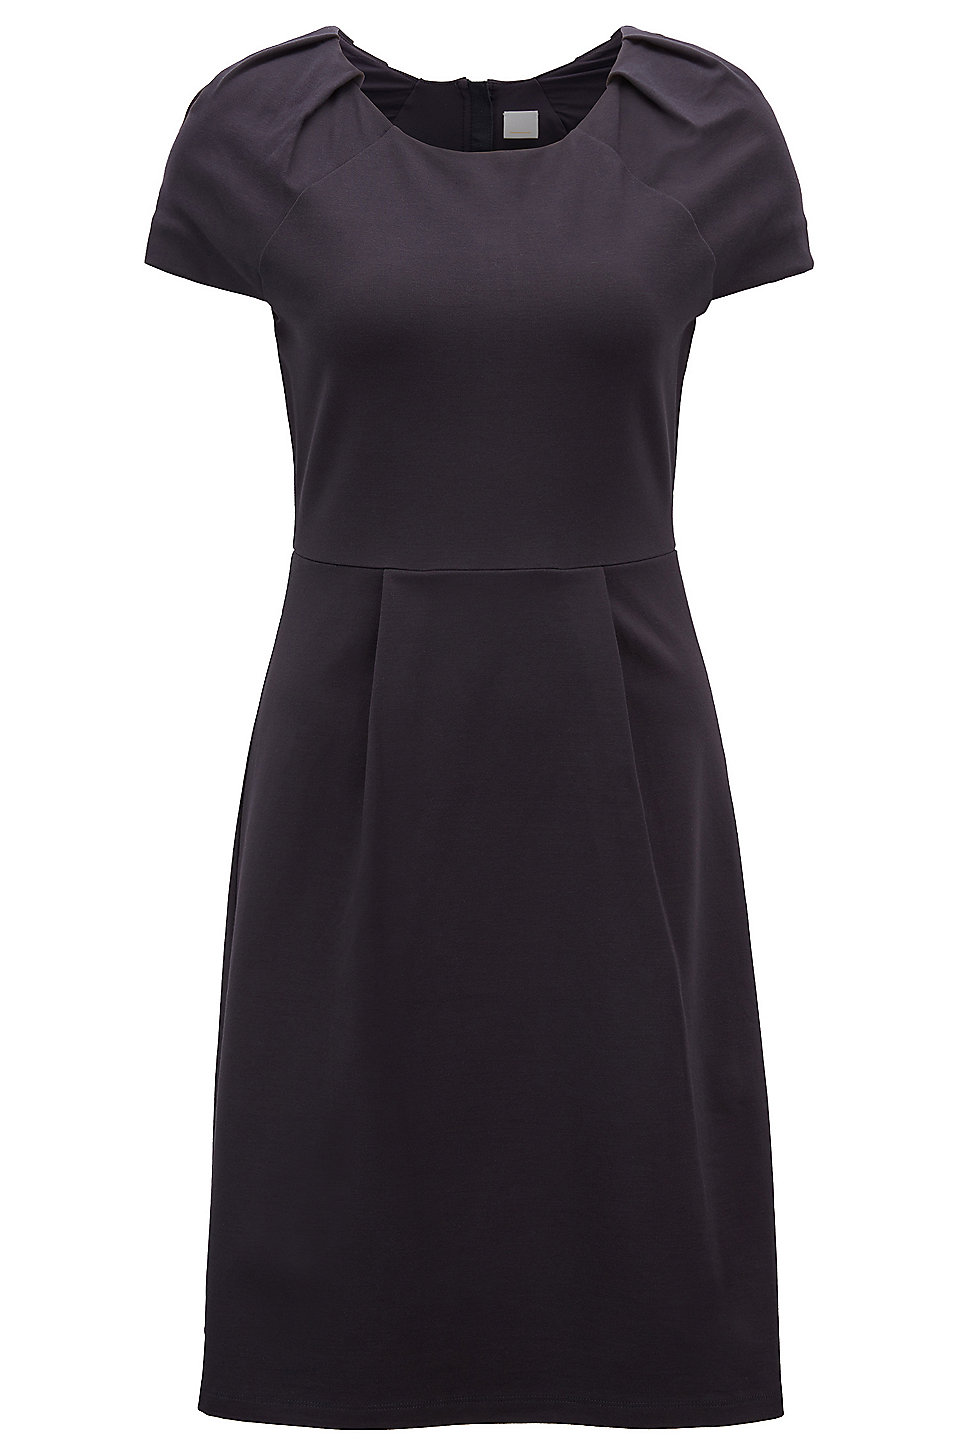 Tailored jersey dress with plissé-tape trim BOSS 2018 Newest Cheap Deals Outlet Cost Prices Cheap Price Clearance Eastbay sdPNmihMu